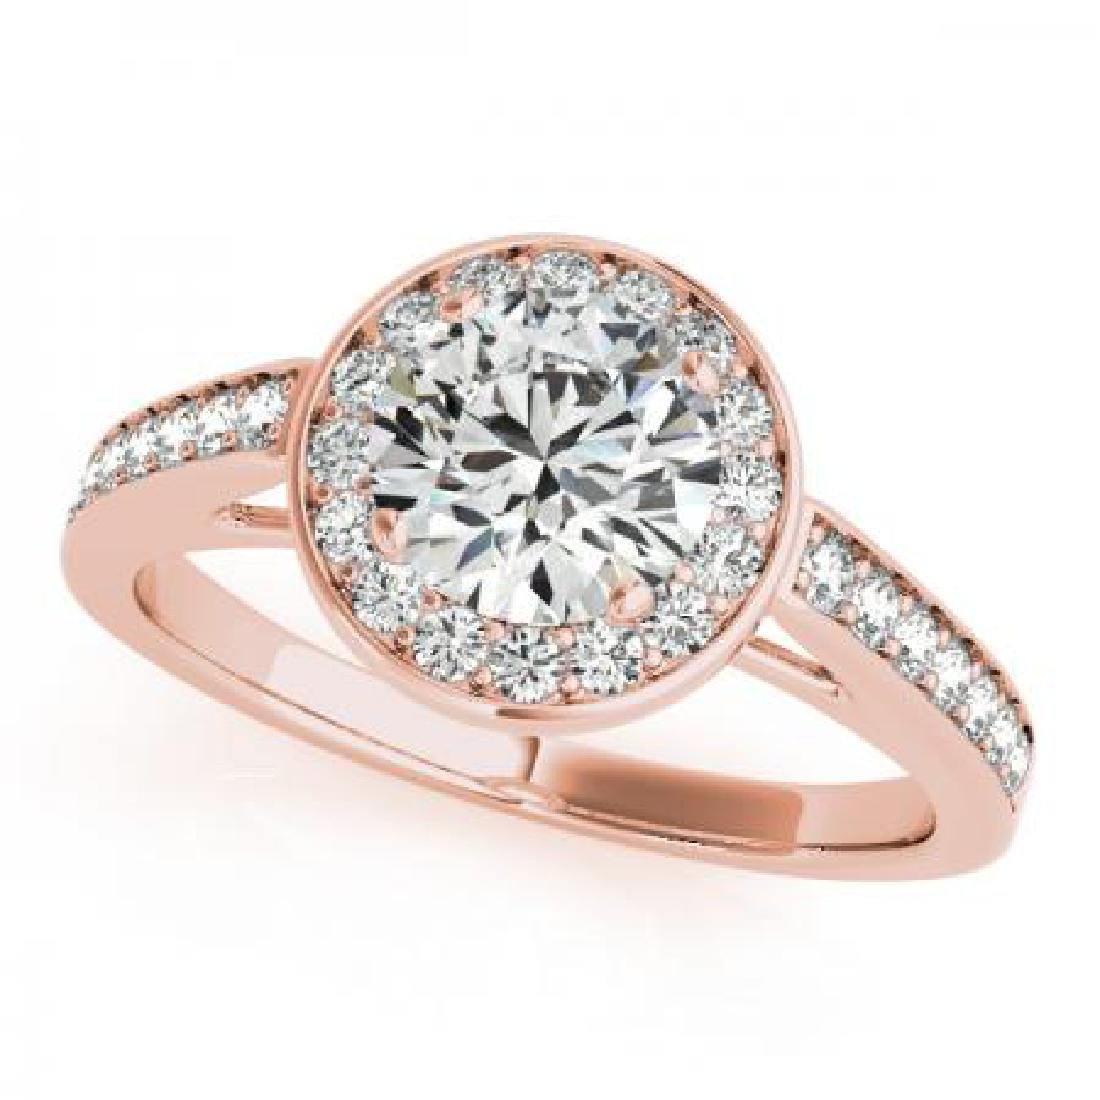 CERTIFIED 18K ROSE GOLD .87 CT G-H/VS-SI1 DIAMOND HALO